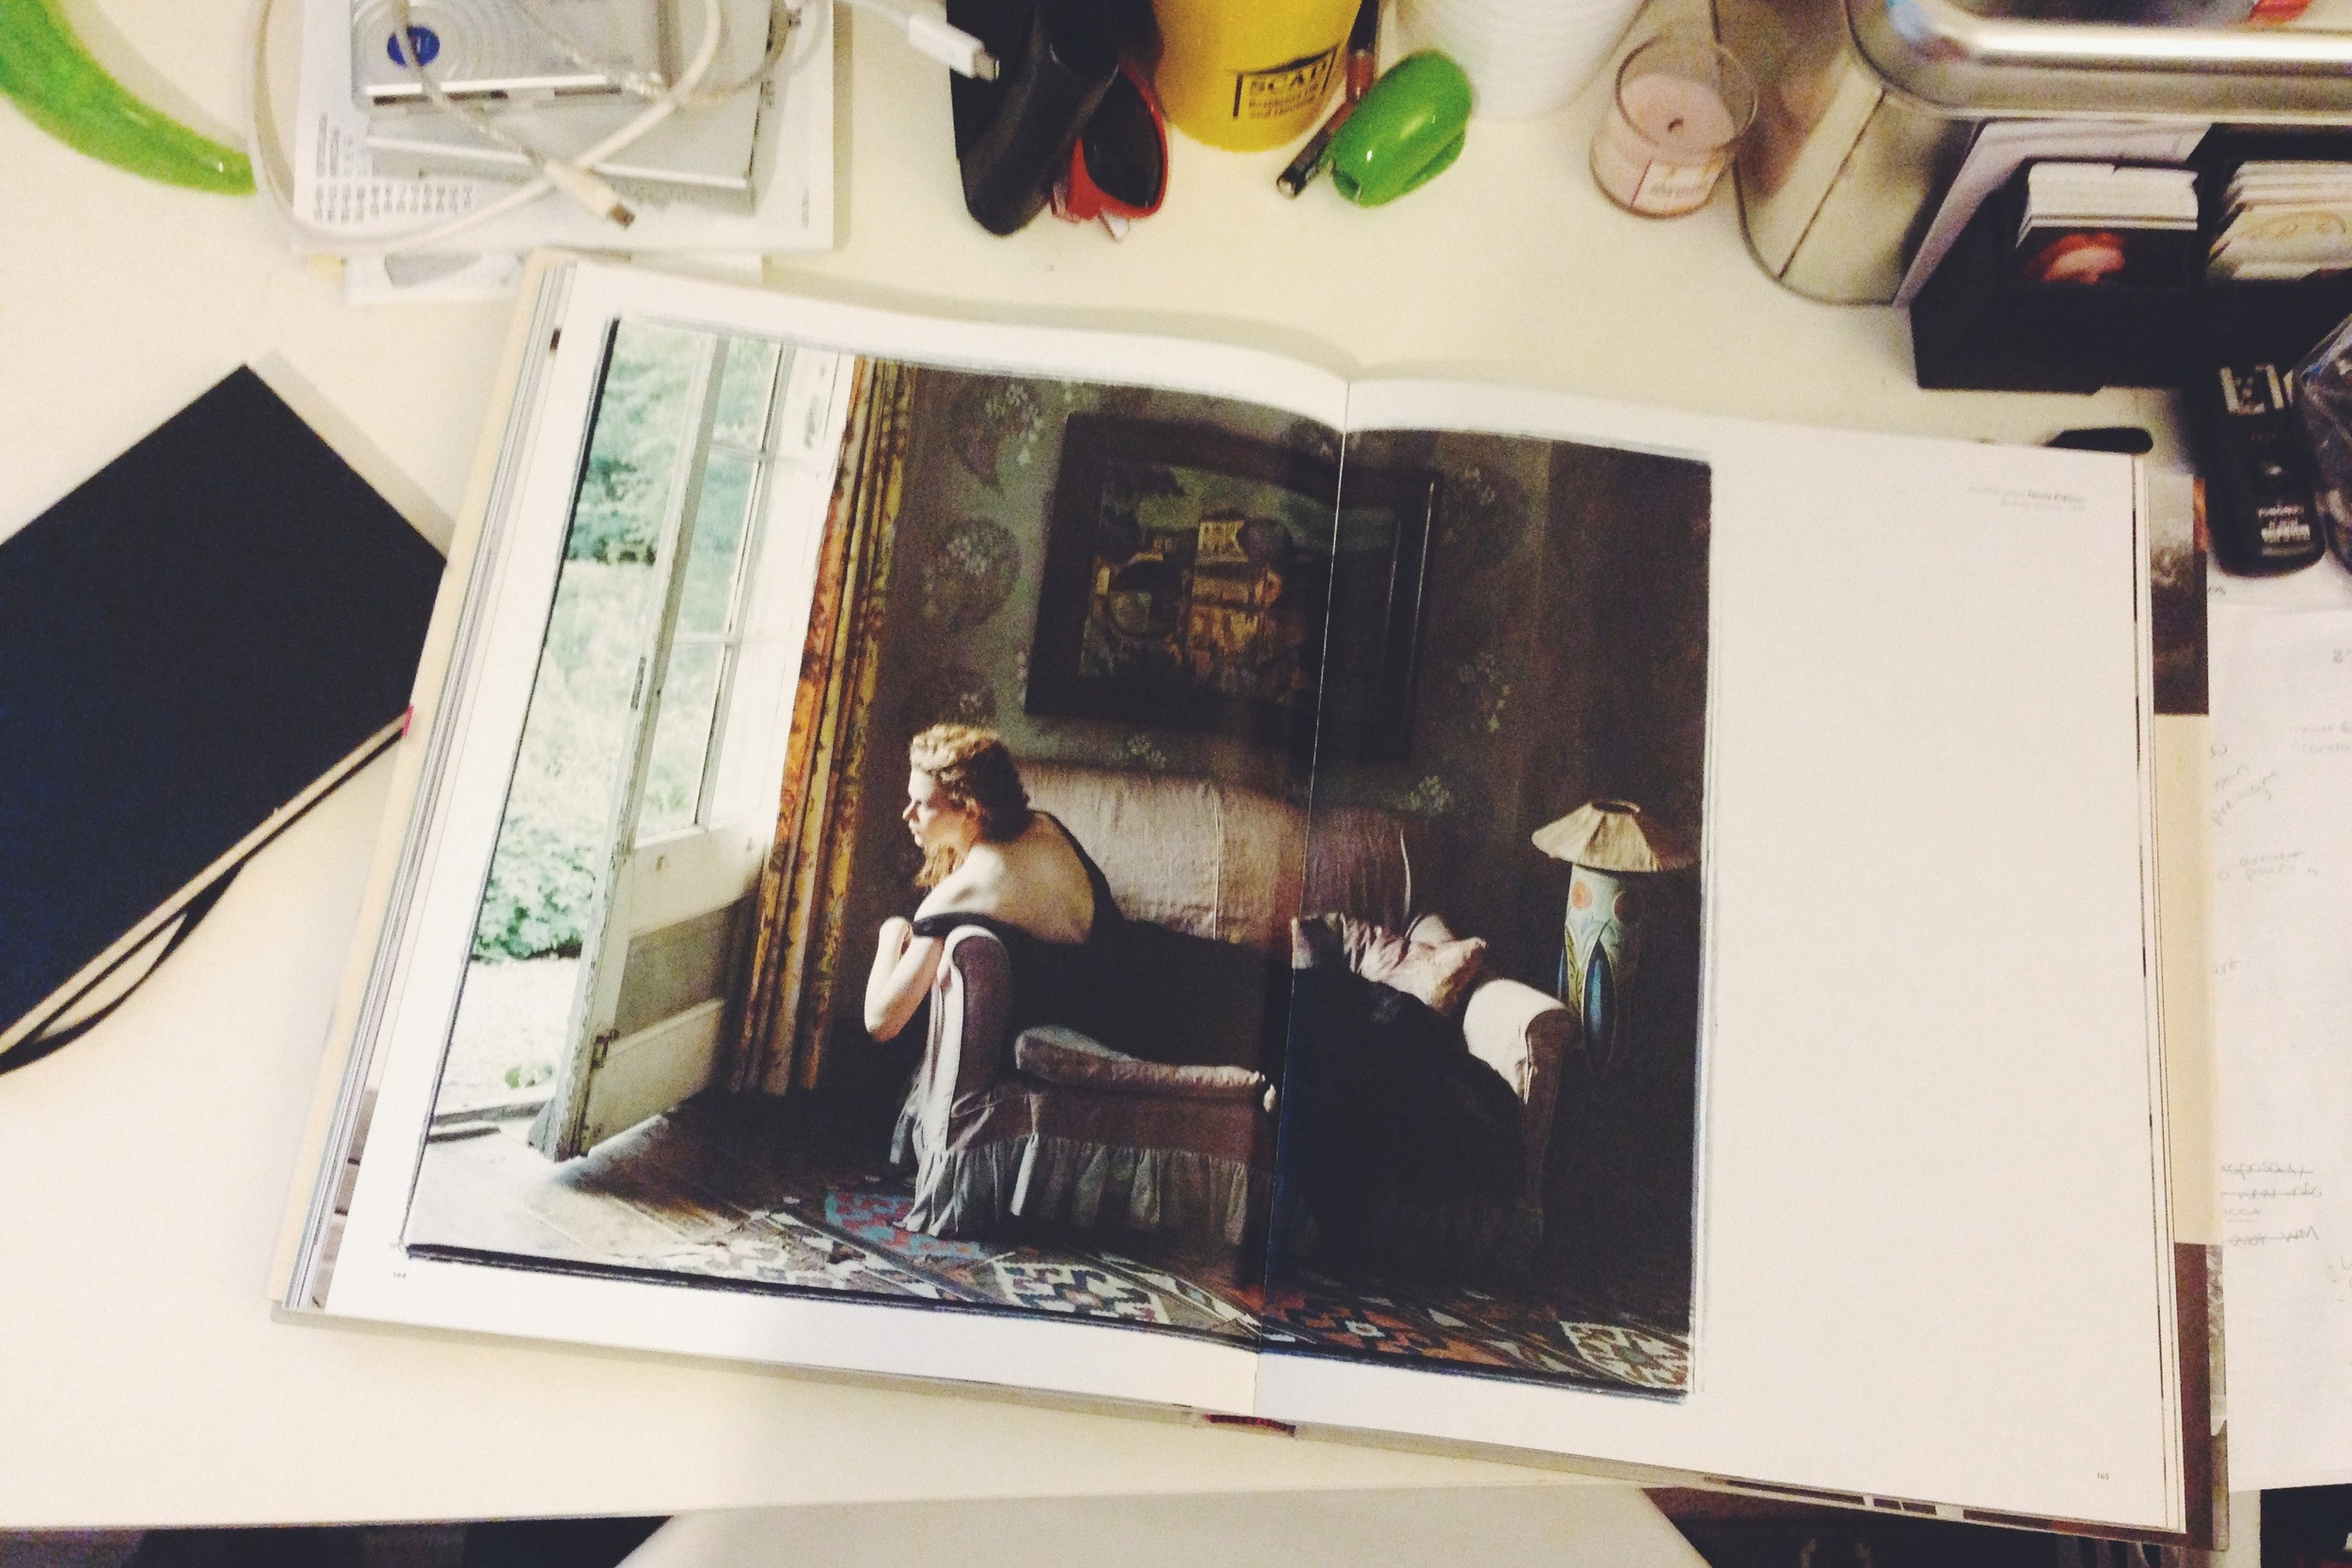 One of my favorite shots in the book, Nicole Kidman by Annie Leibovitz